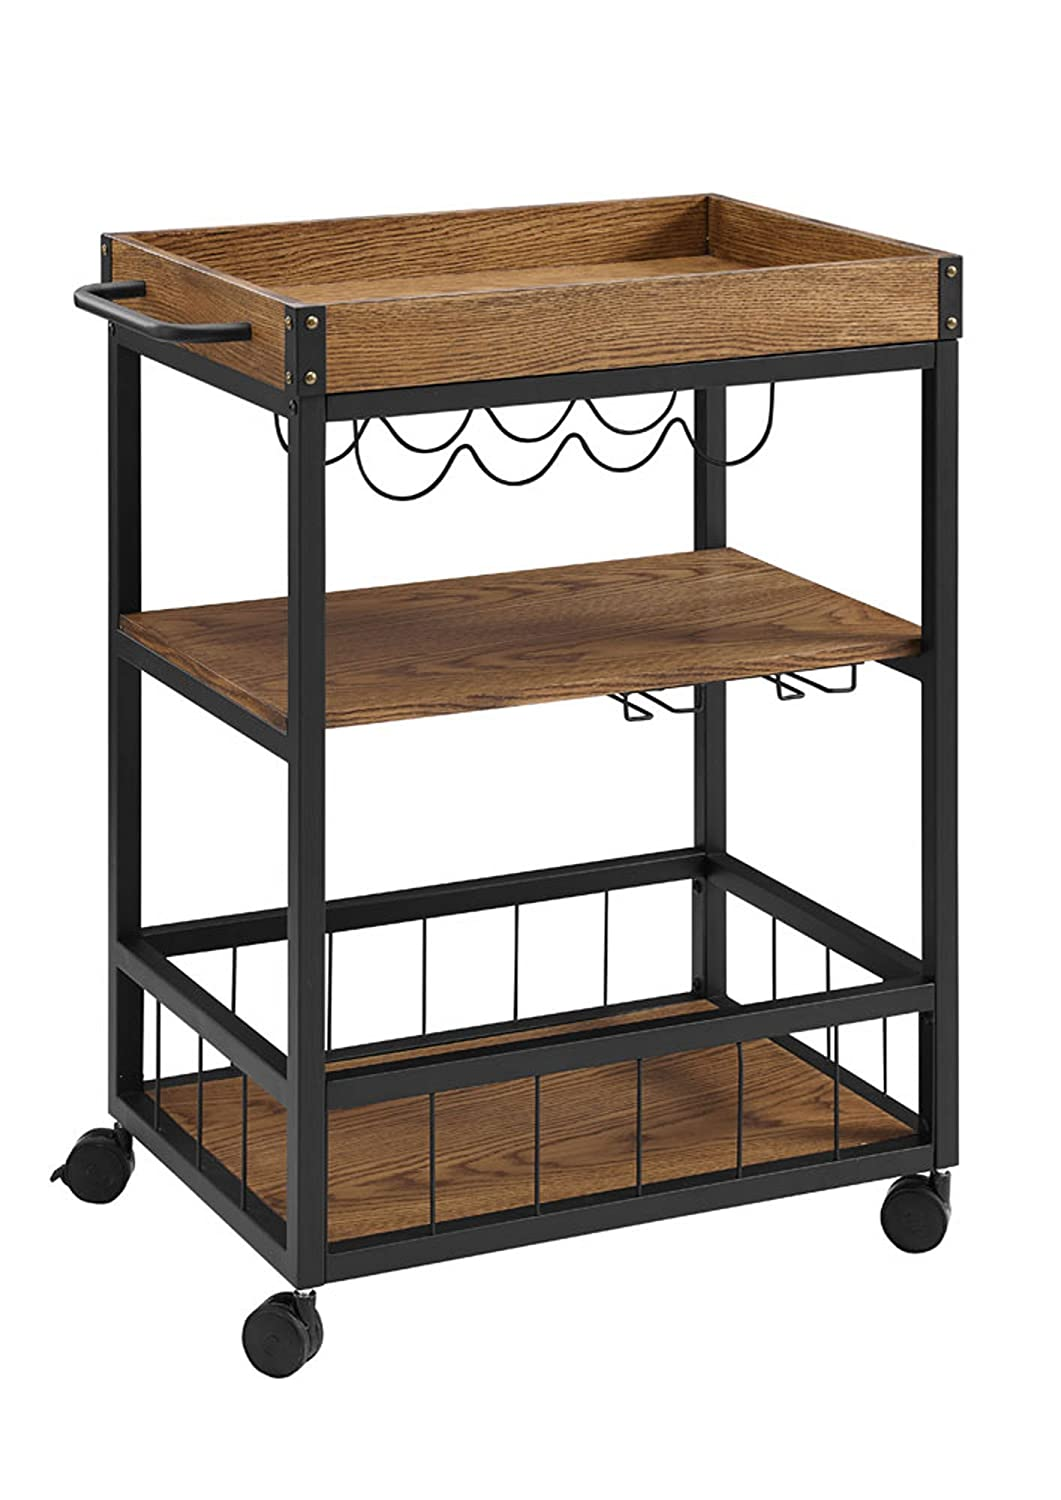 "Linon 464908MTL01U Austin Kitchen Cart, 30.5"" W x 18.13"" D x 36.25"" H, Black"